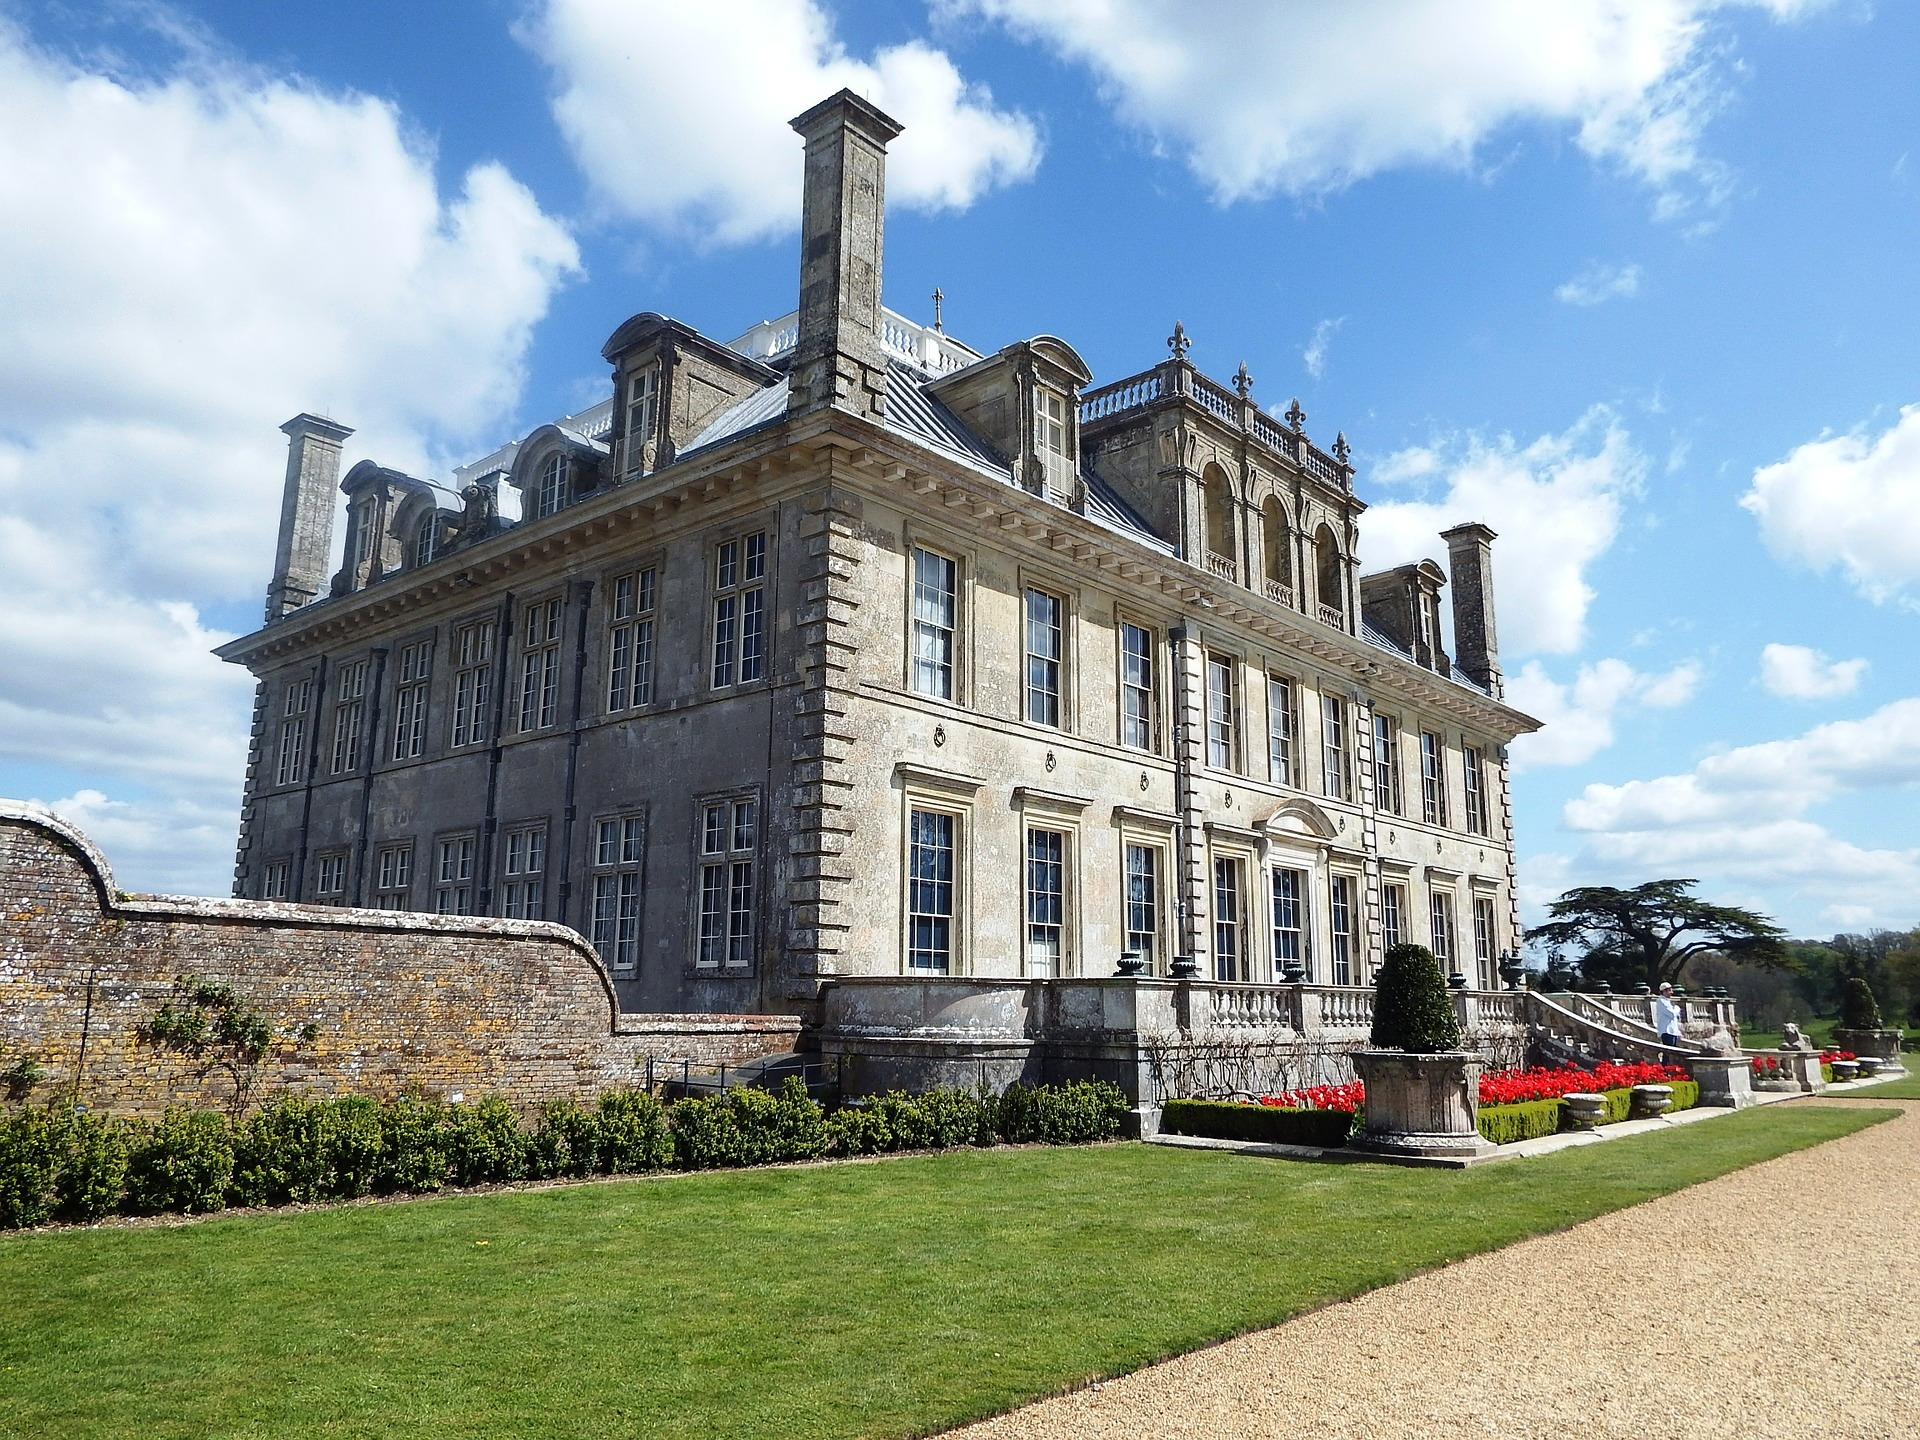 1 - Kingston Lacy.jpg